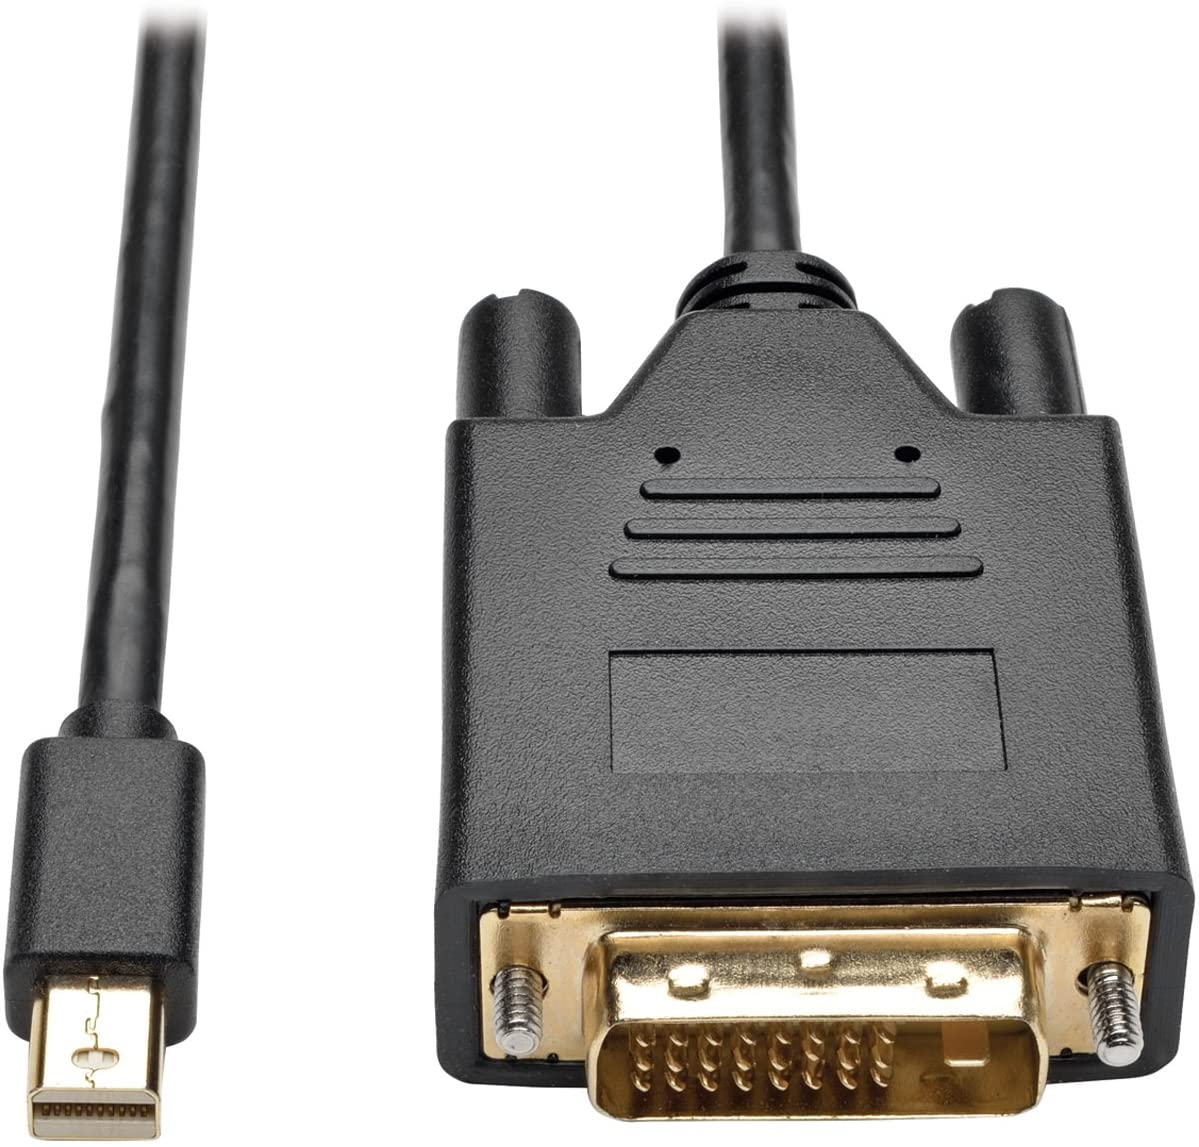 Tripp Lite Mini DisplayPort to DVI Active Adapter, MDP 1.2, MDP to DVI (M/M), MDP2DVI, 1080p, 3 ft. (P586-003-DVI-V2)